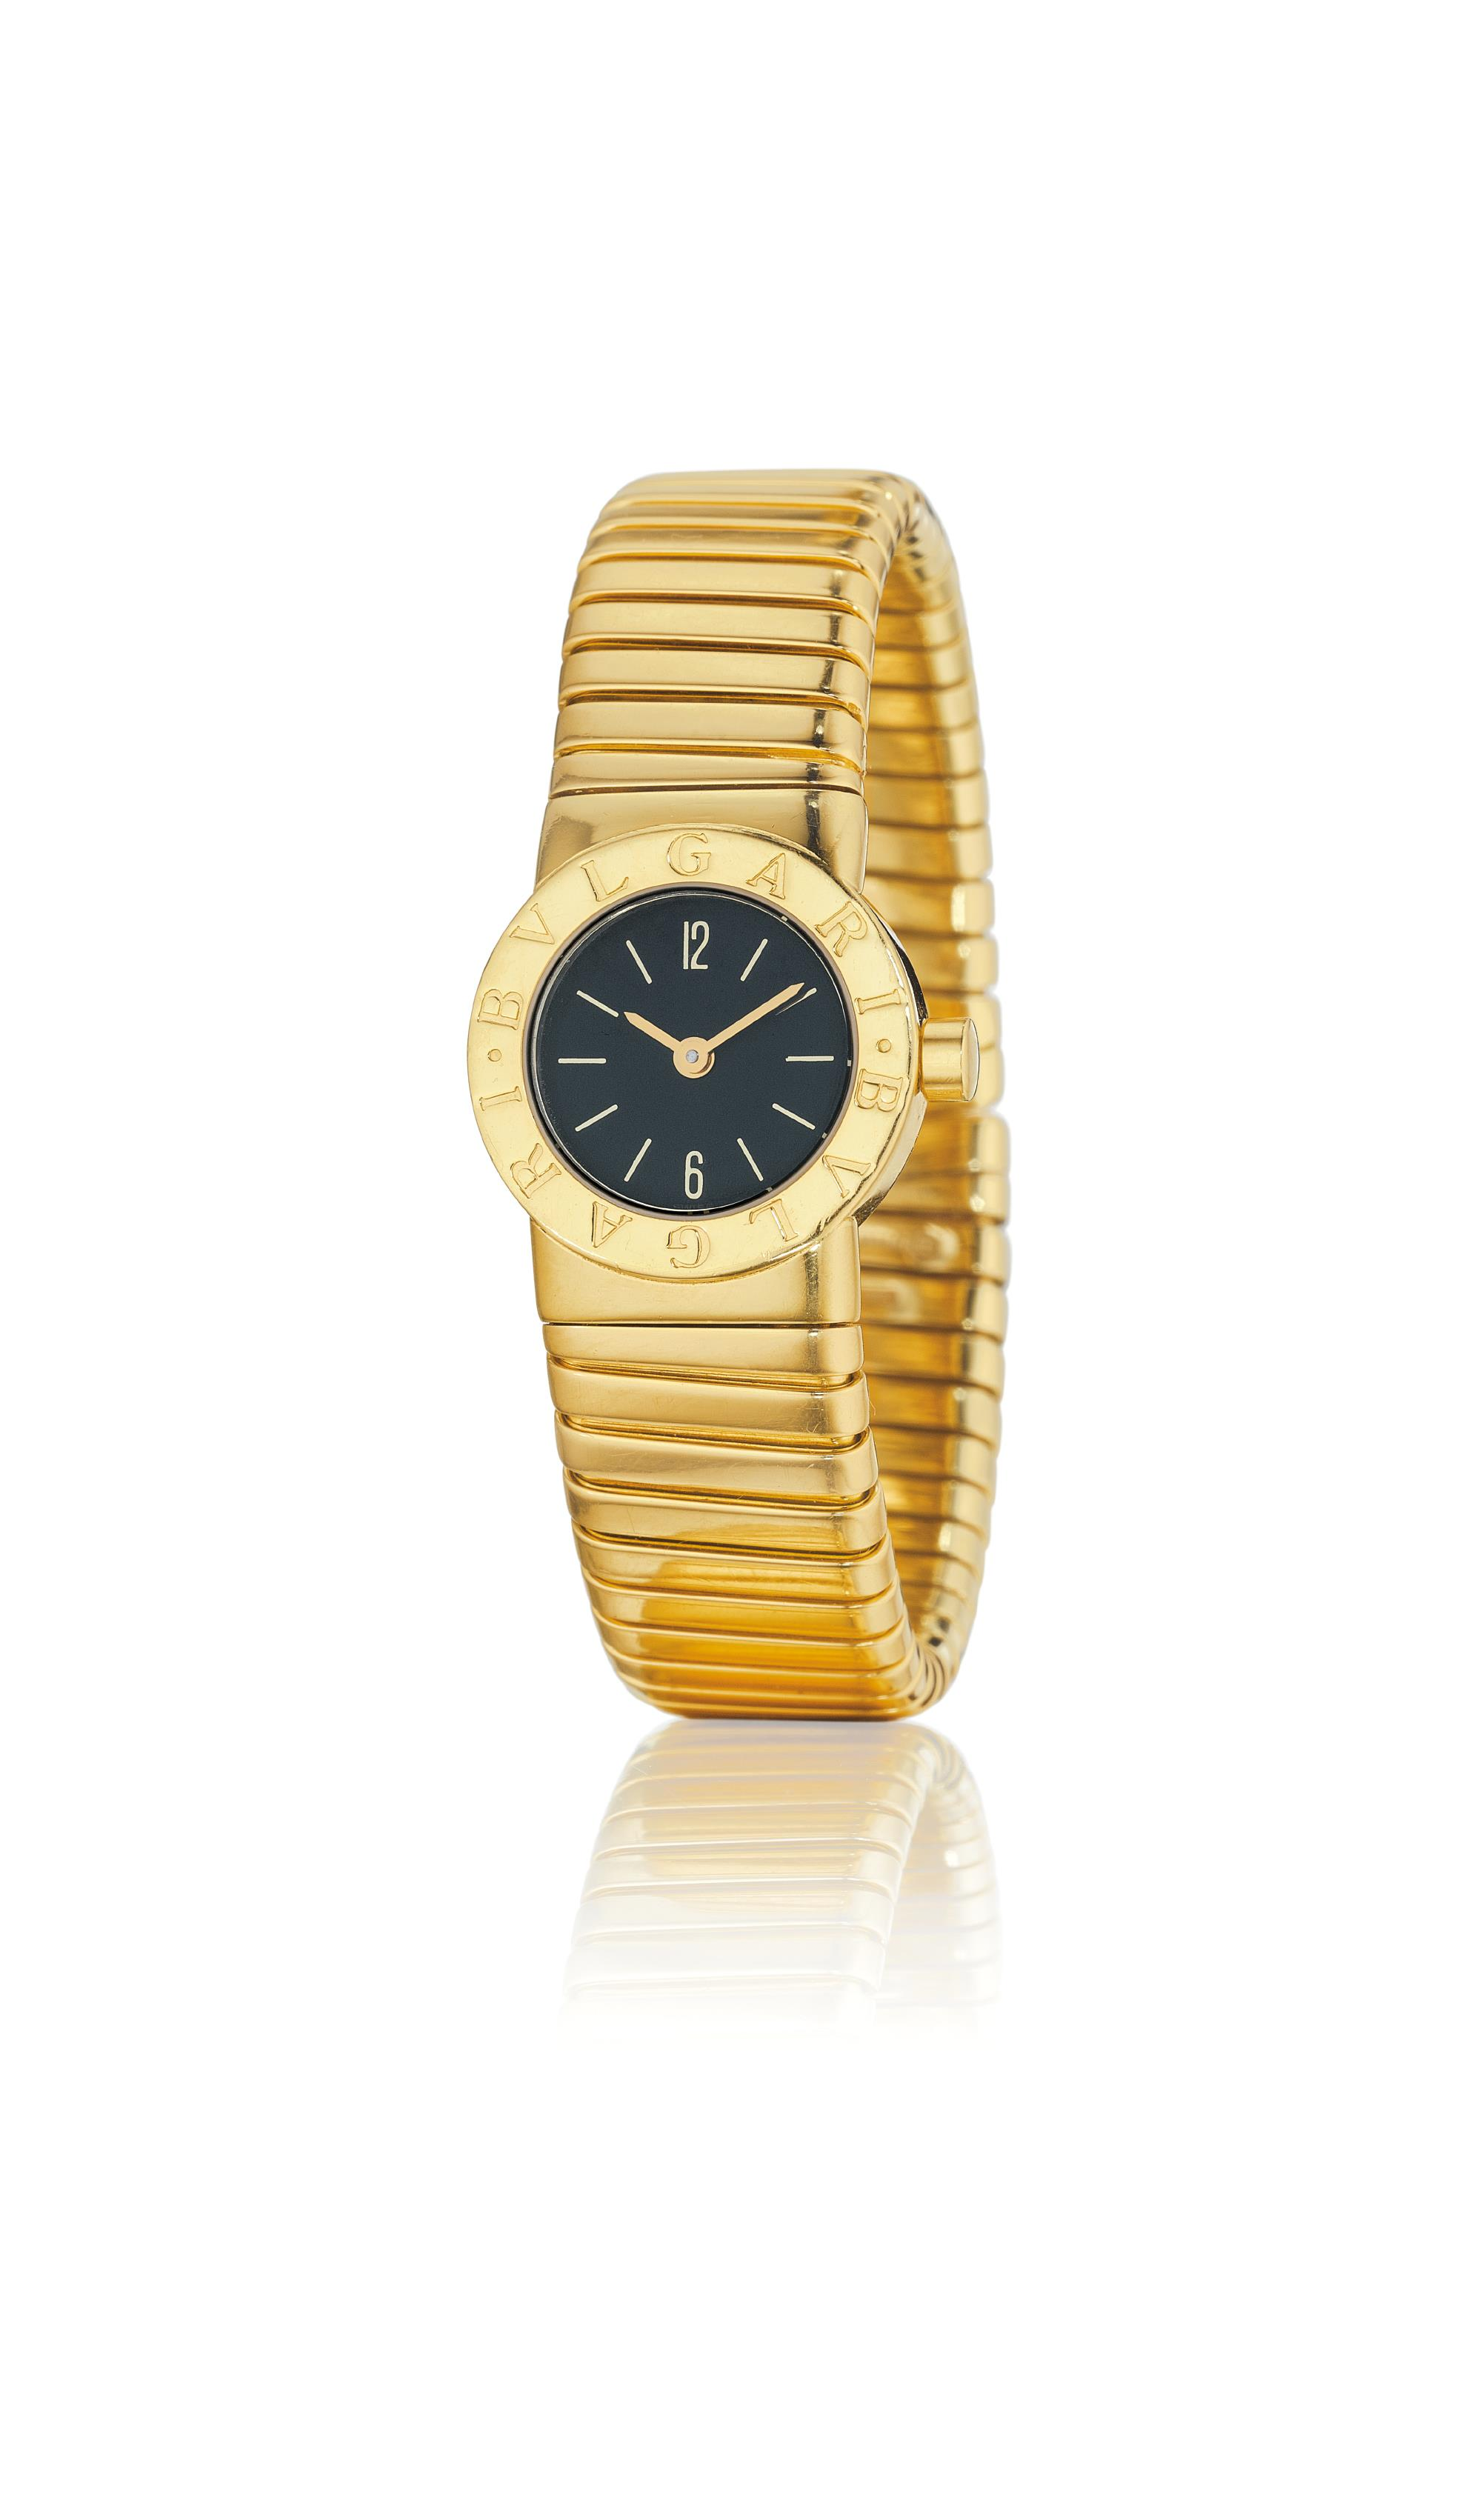 A Lady's Gold 'Tubogas' Wristwatch